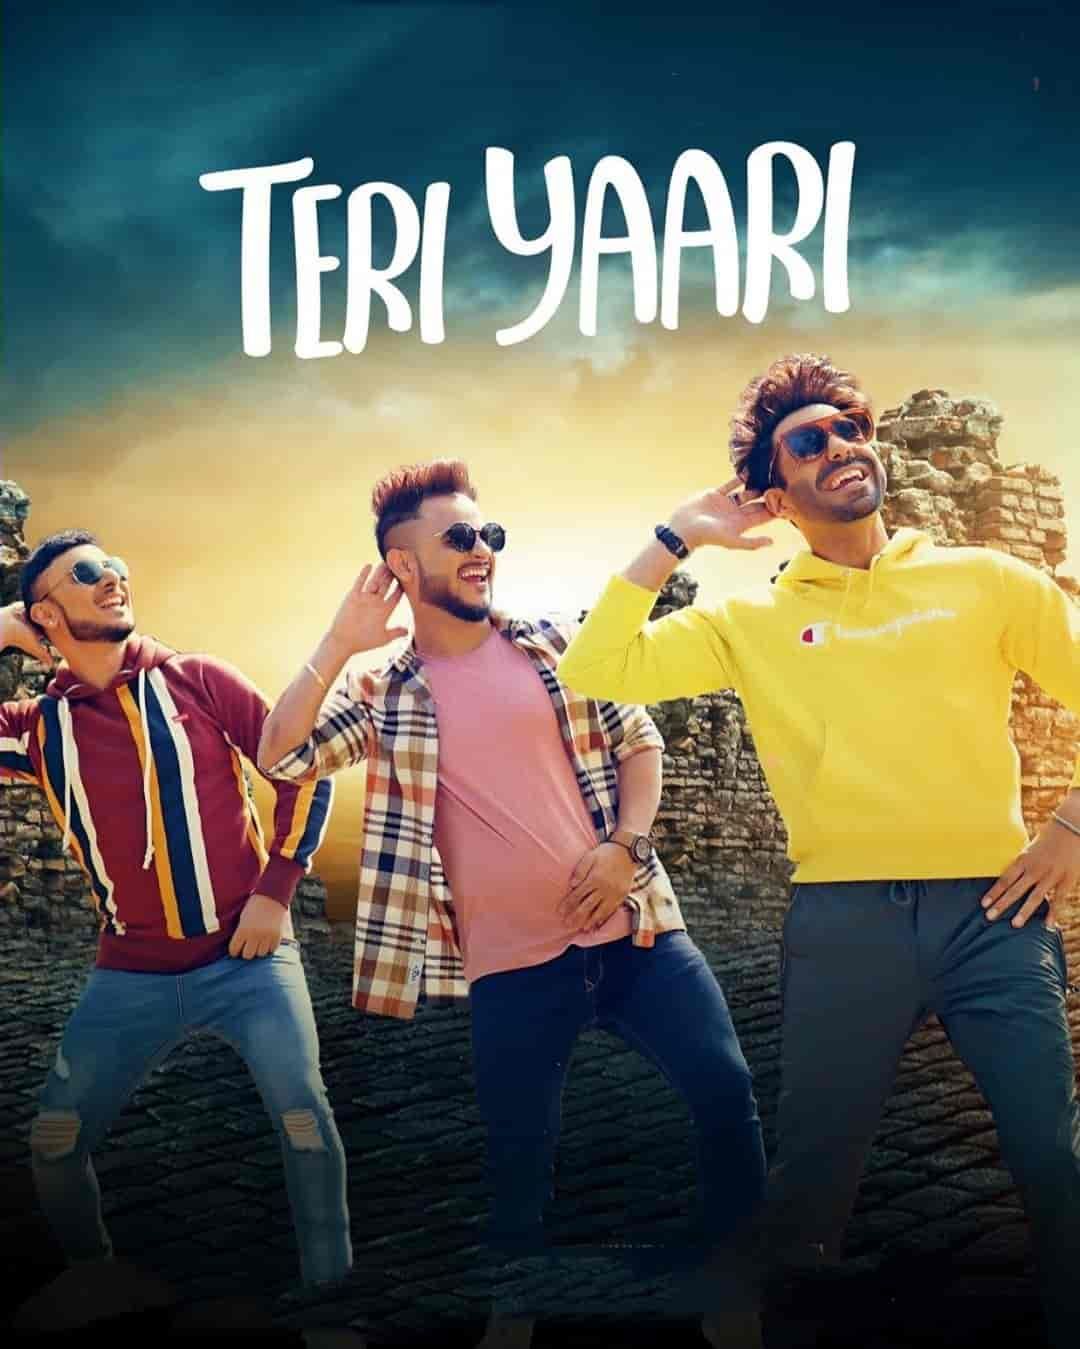 Teri Yaari Lyrics Image By Millind Gaba